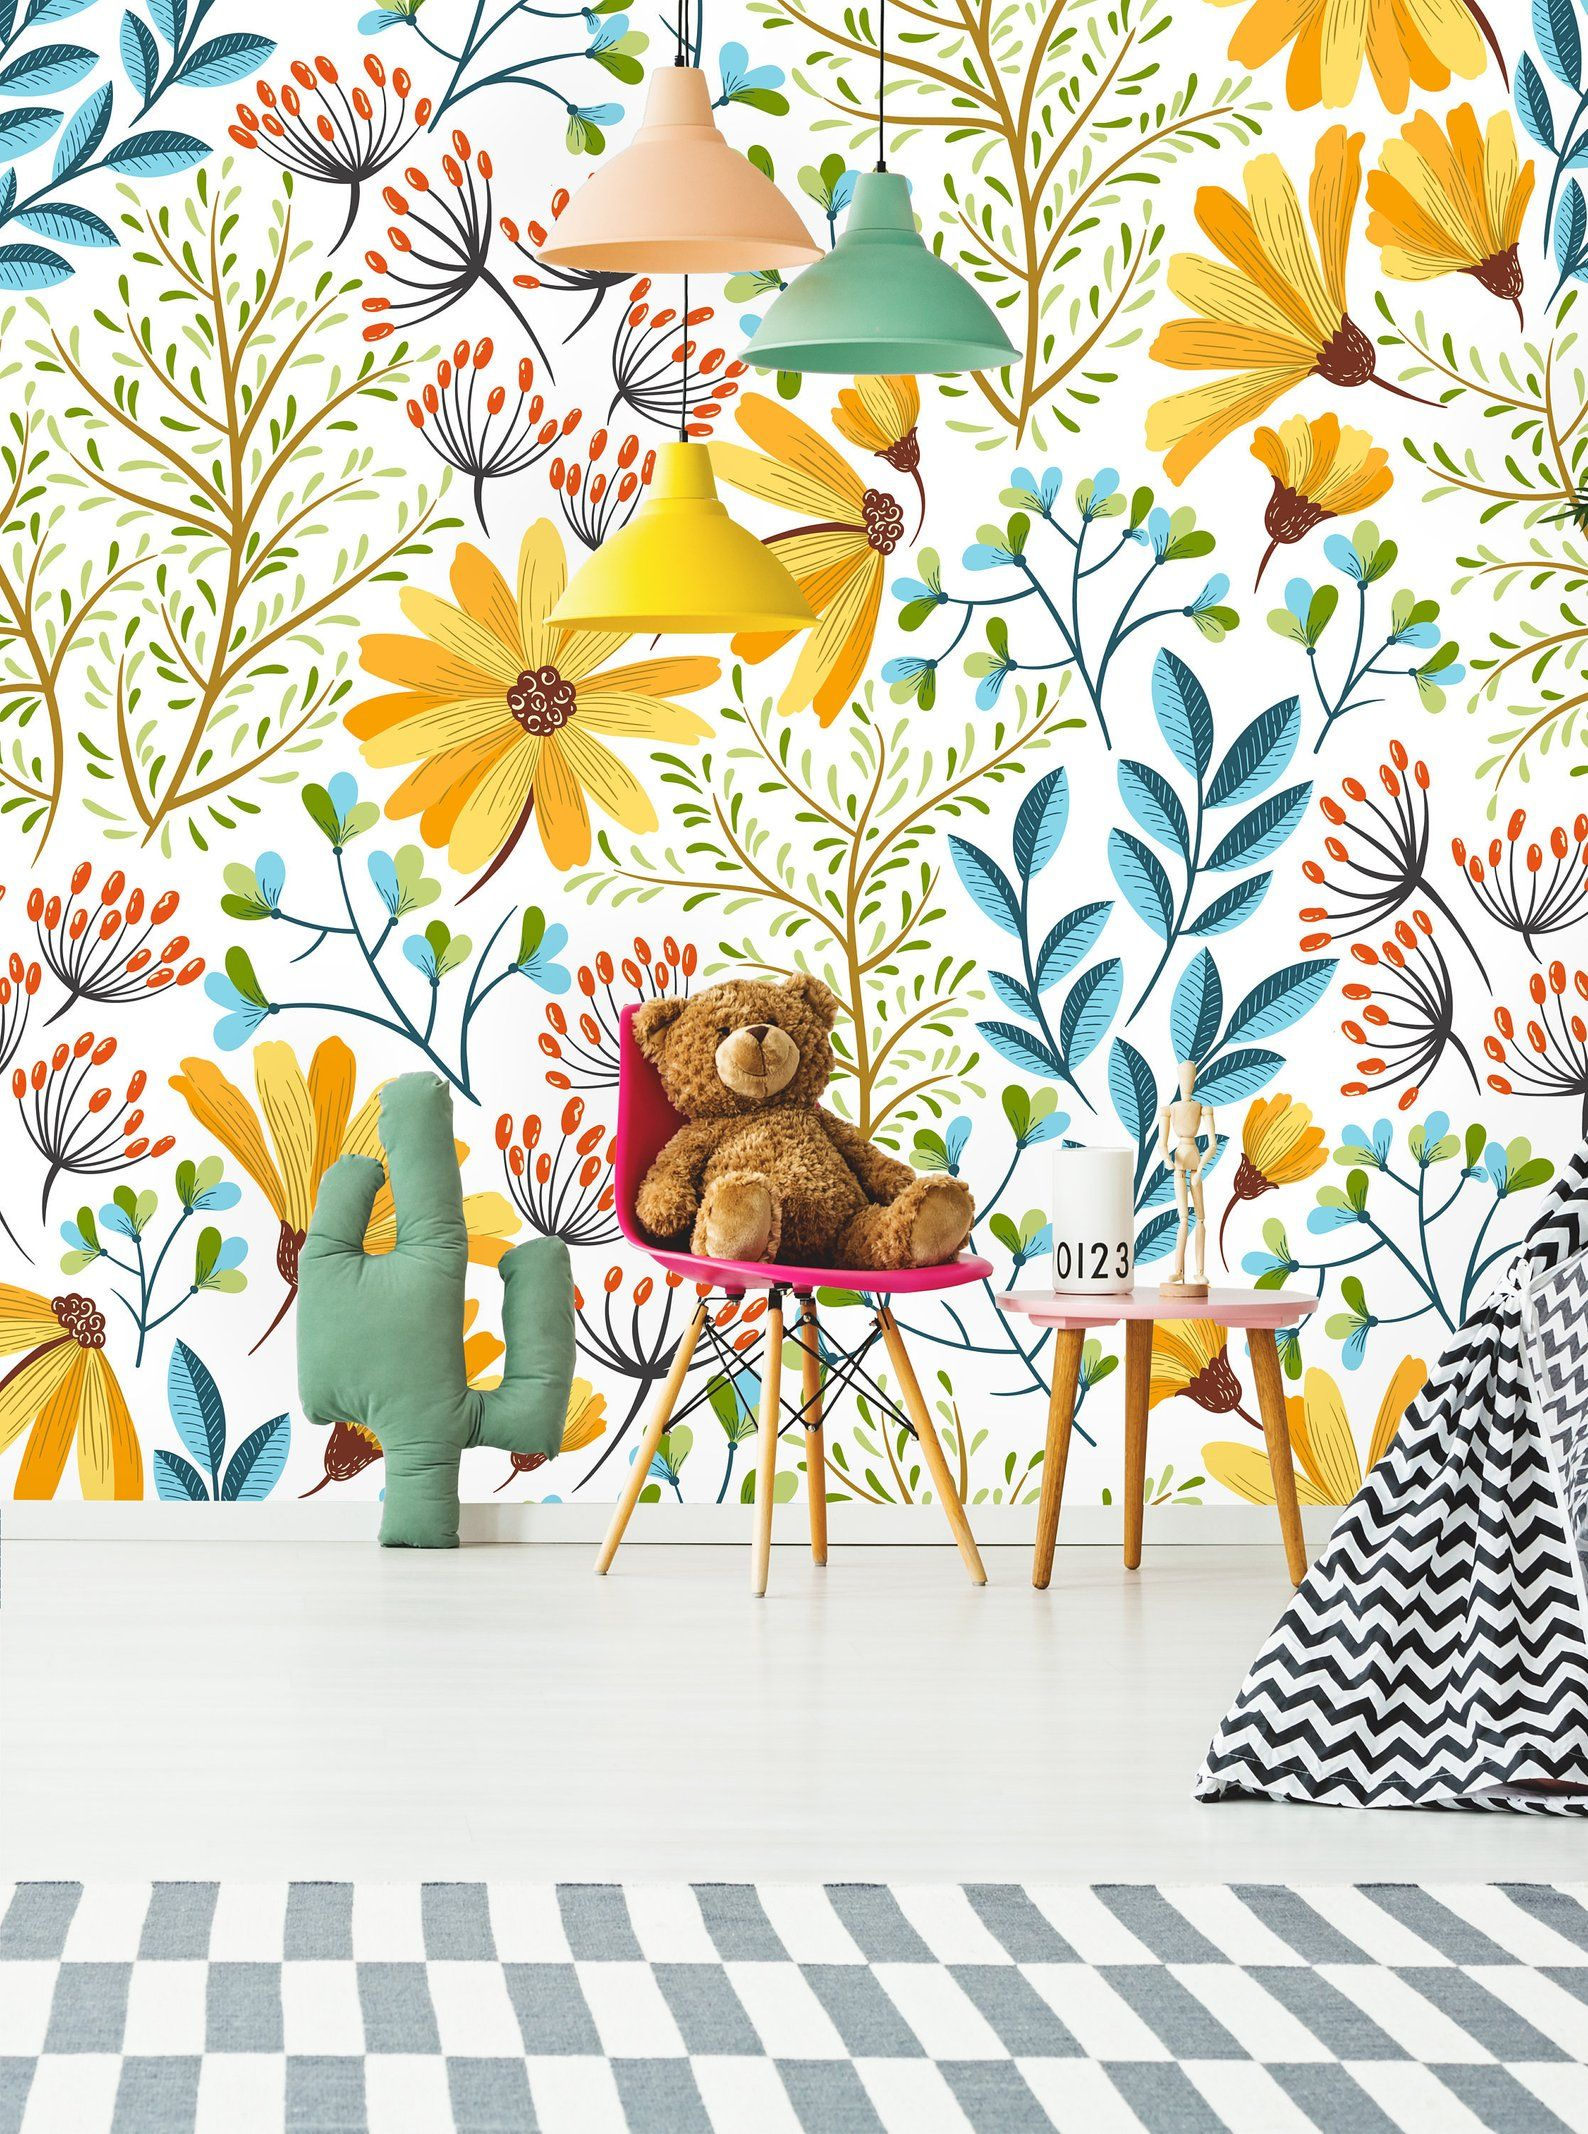 Removable Wallpaper Self Adhesive Wallpaper Boho Spring